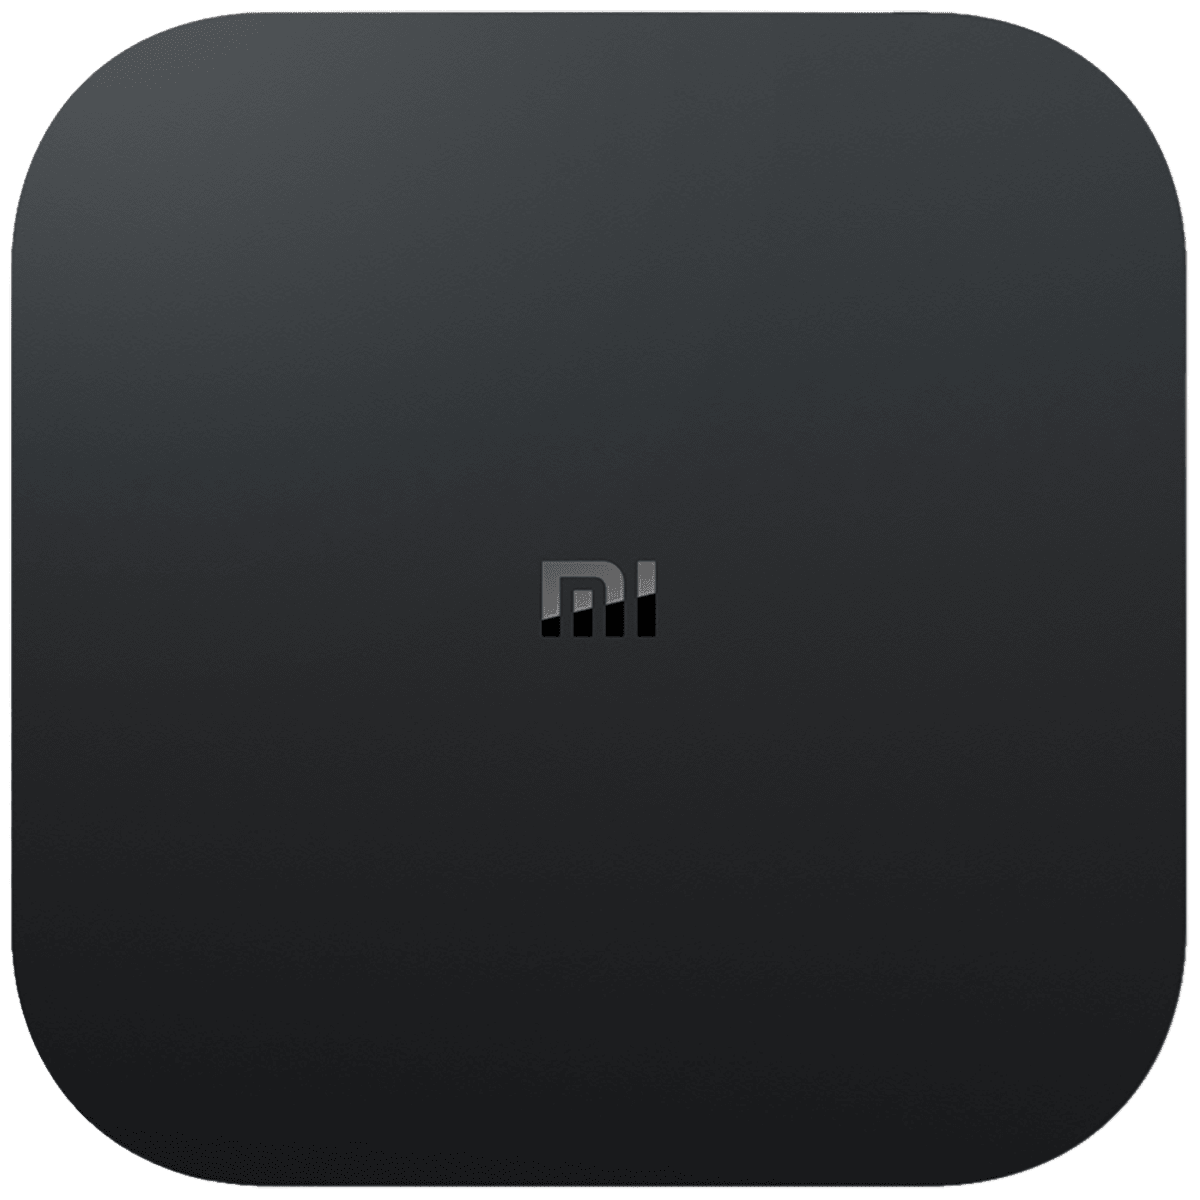 Mi 4K Smart TV Box with Google Assistant Voice Remote (Android TV 9.0, PFJ4096IN, Black)